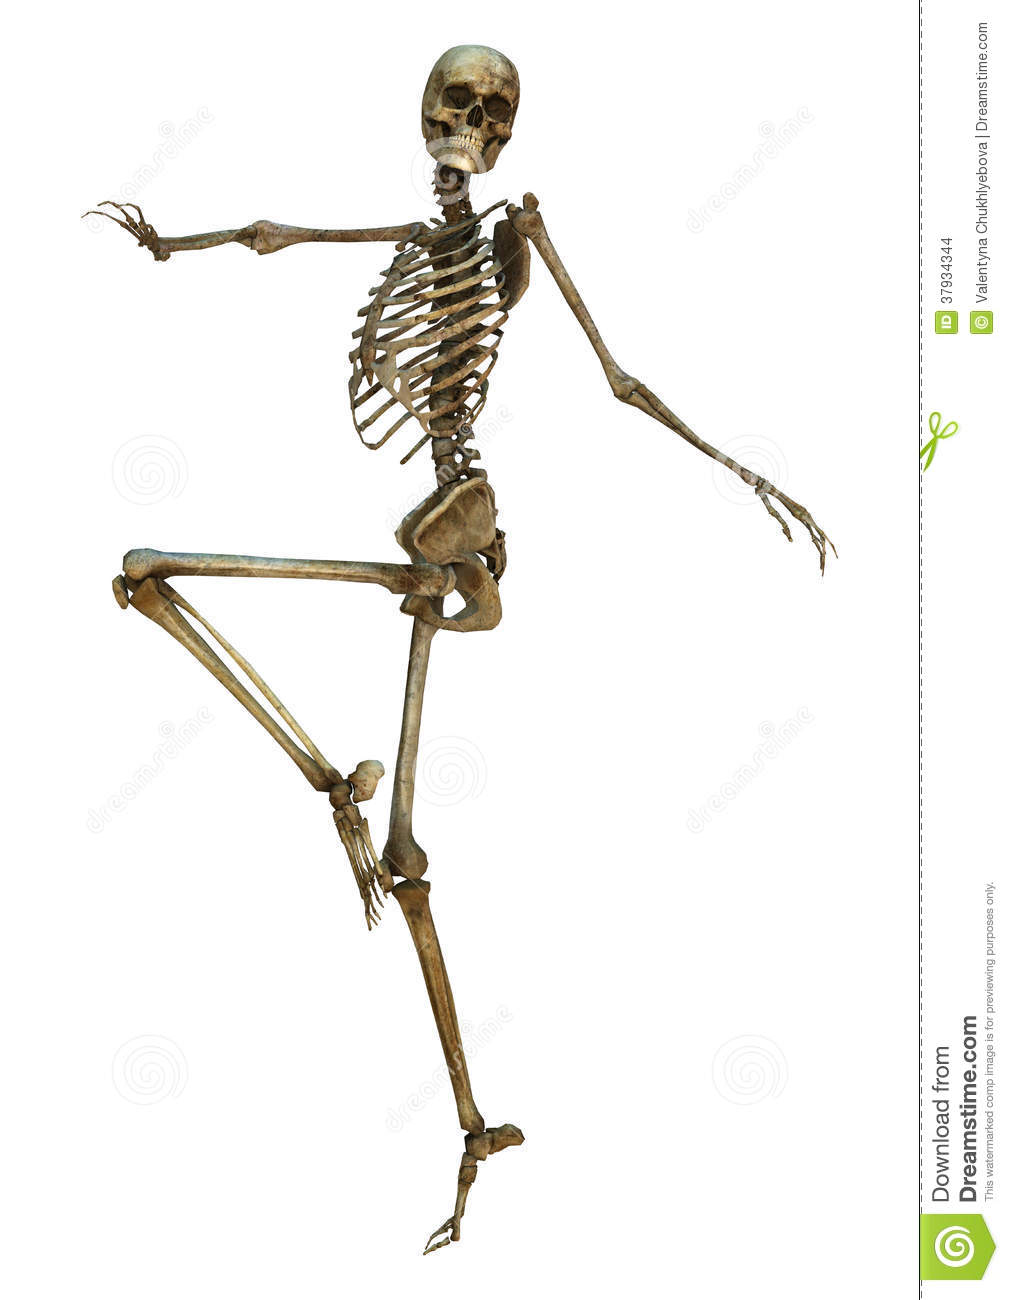 3D Digital Render Of An Old Dancing Human Skeleton Isolated On White